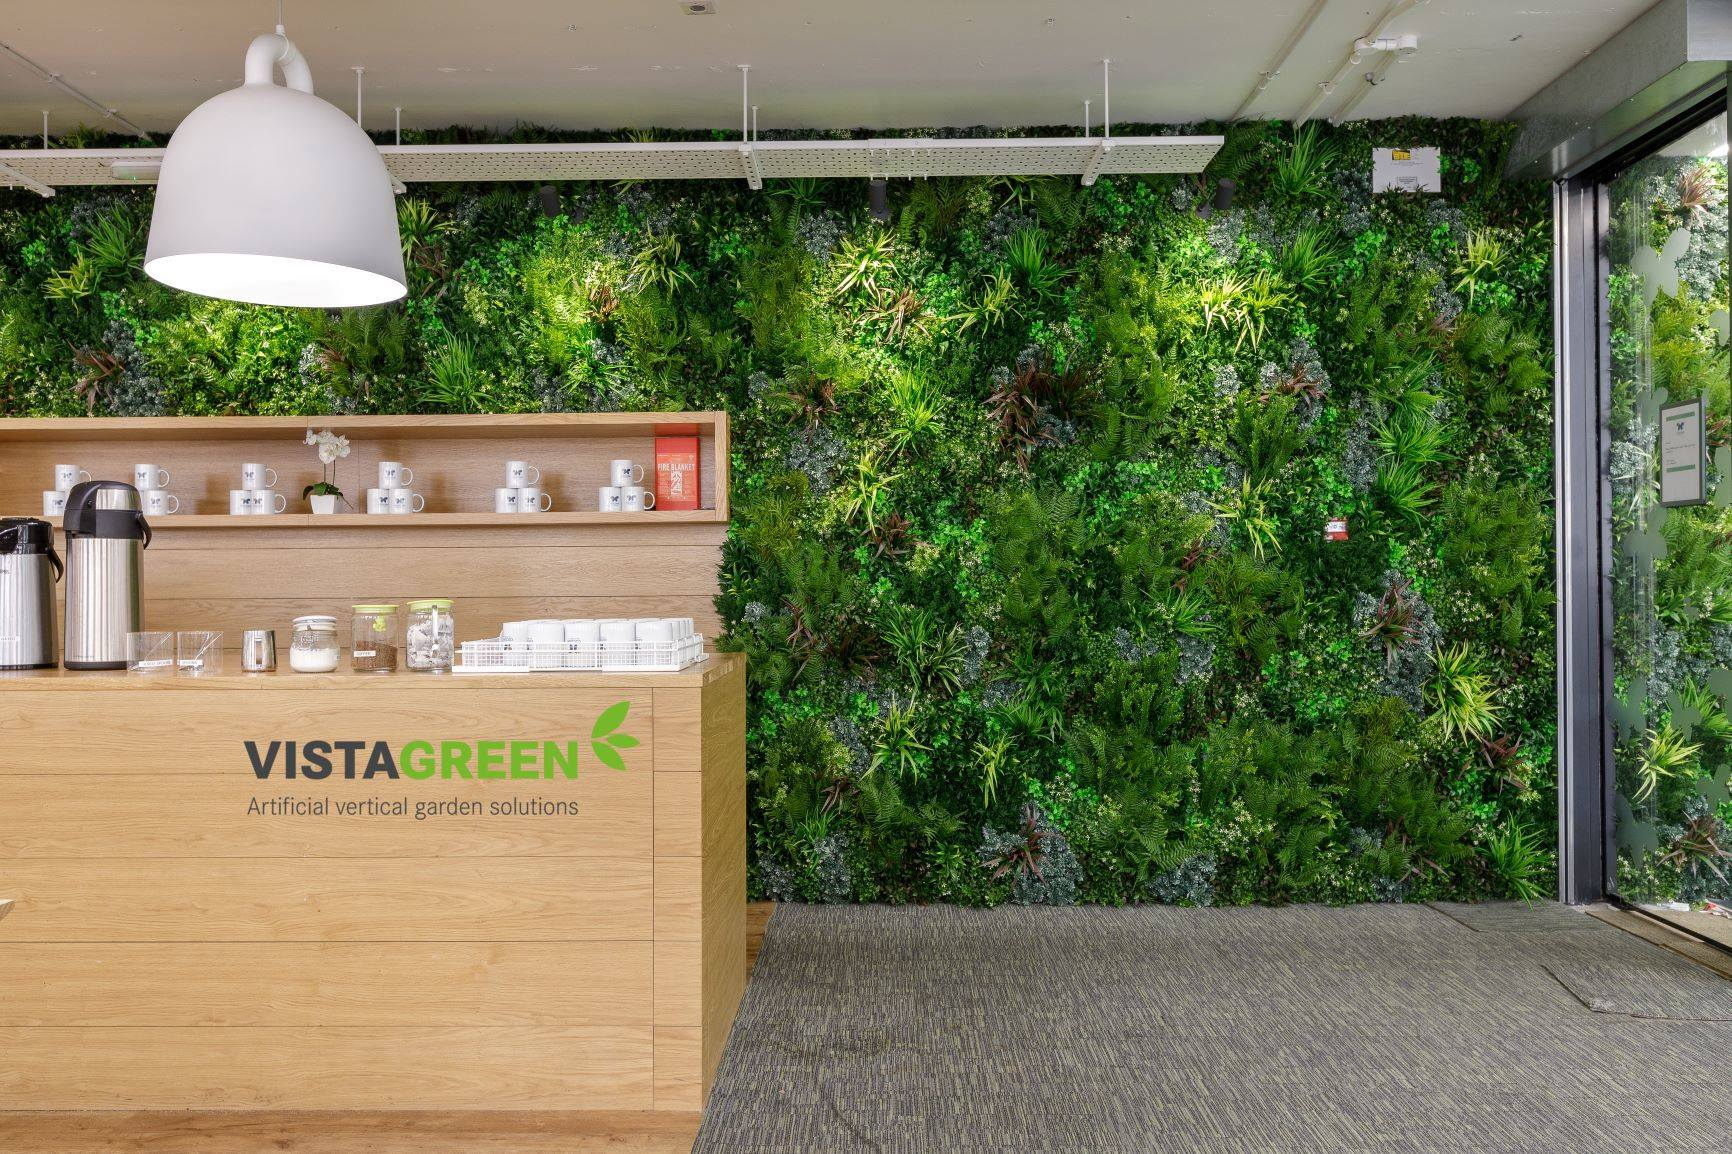 Commercial-green-wall-for-business-artificial-living-wall-panel-vistagreen-acoustics